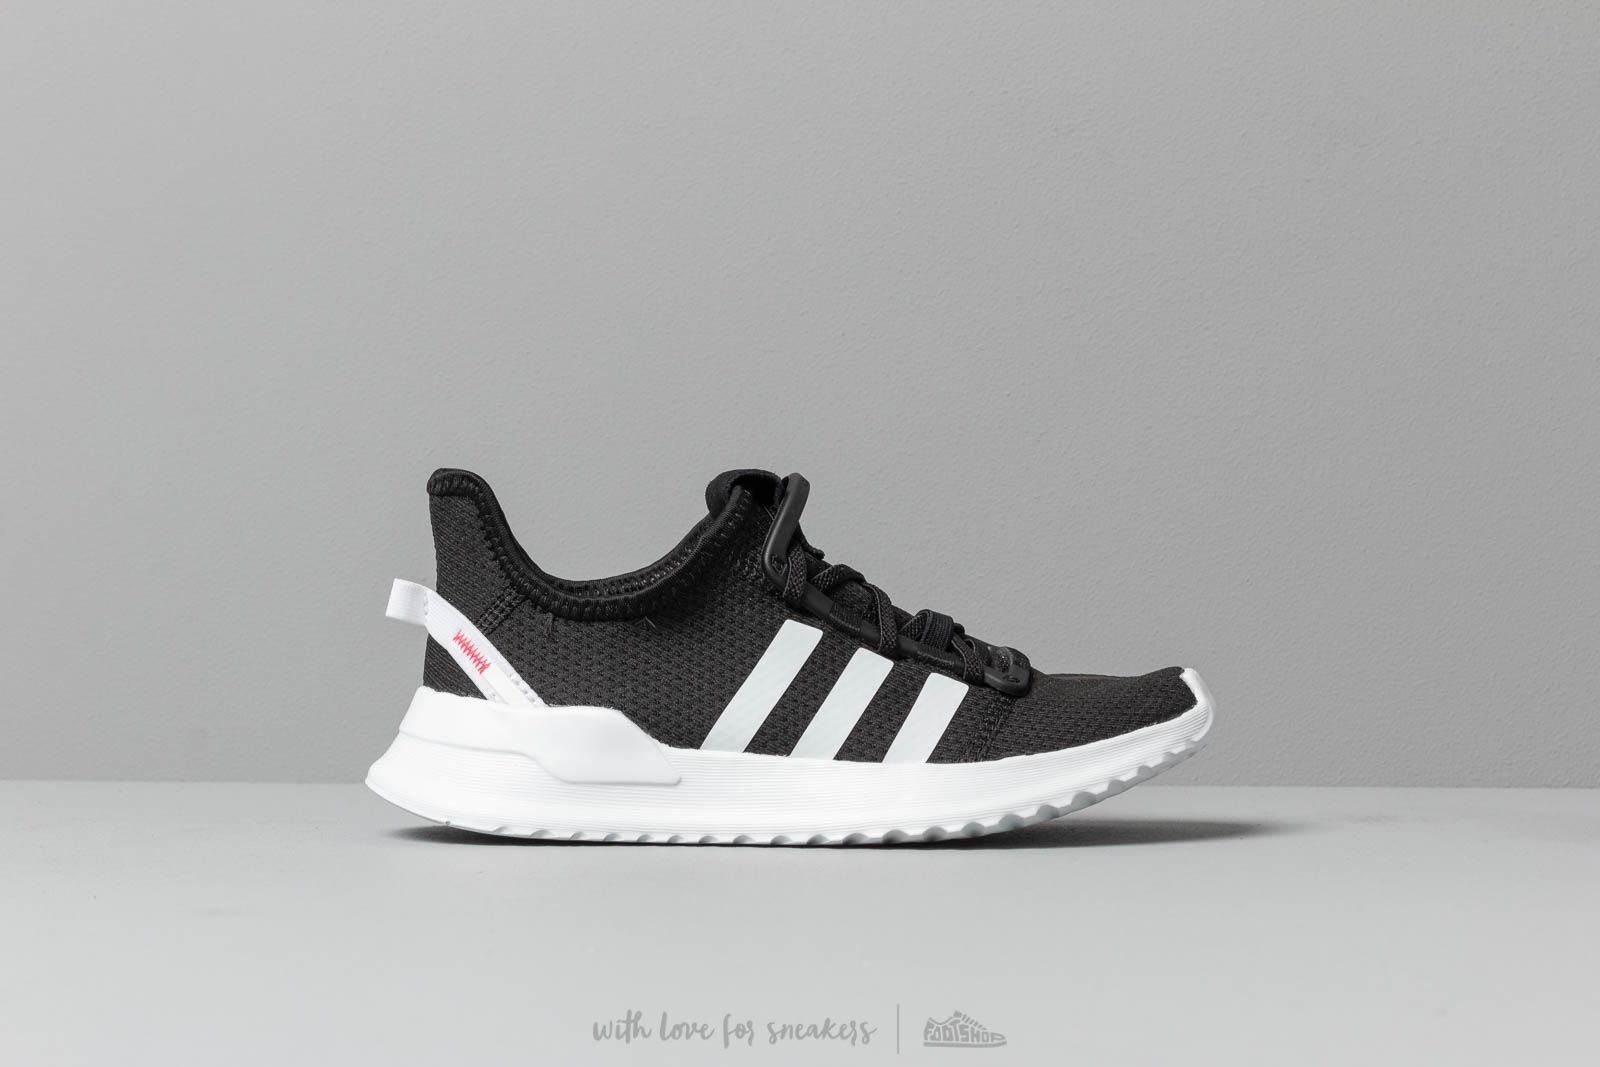 adidas U Path Run C Core Black  Ftw White  Shock Red za skvělou cenu 7b29a230f3d